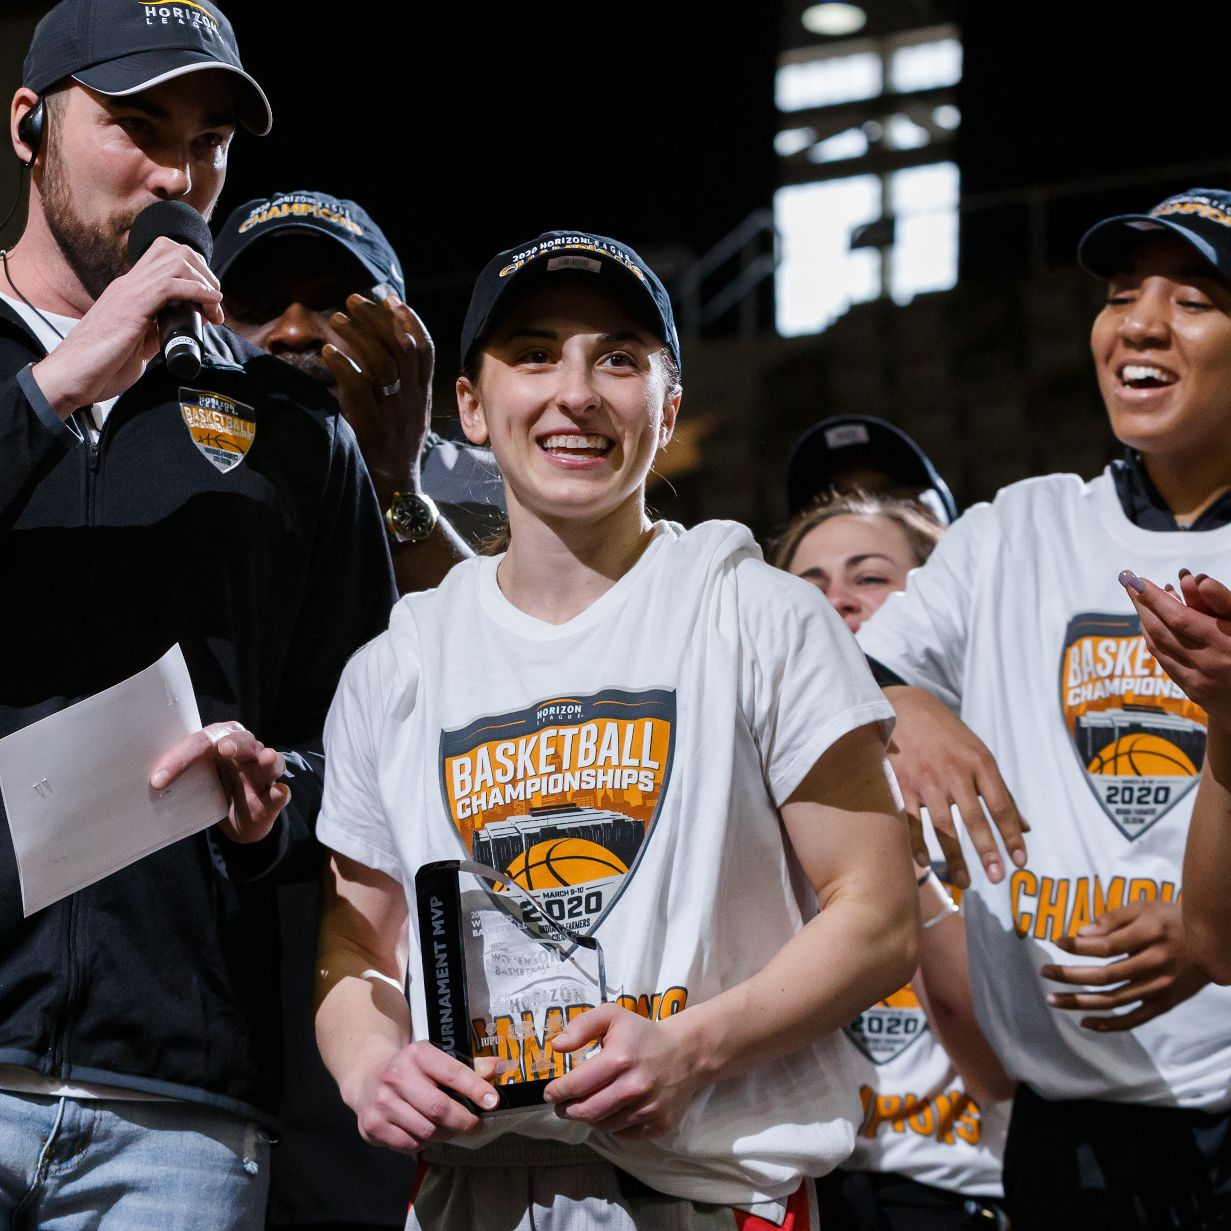 a woman accepts an MVP award on stage